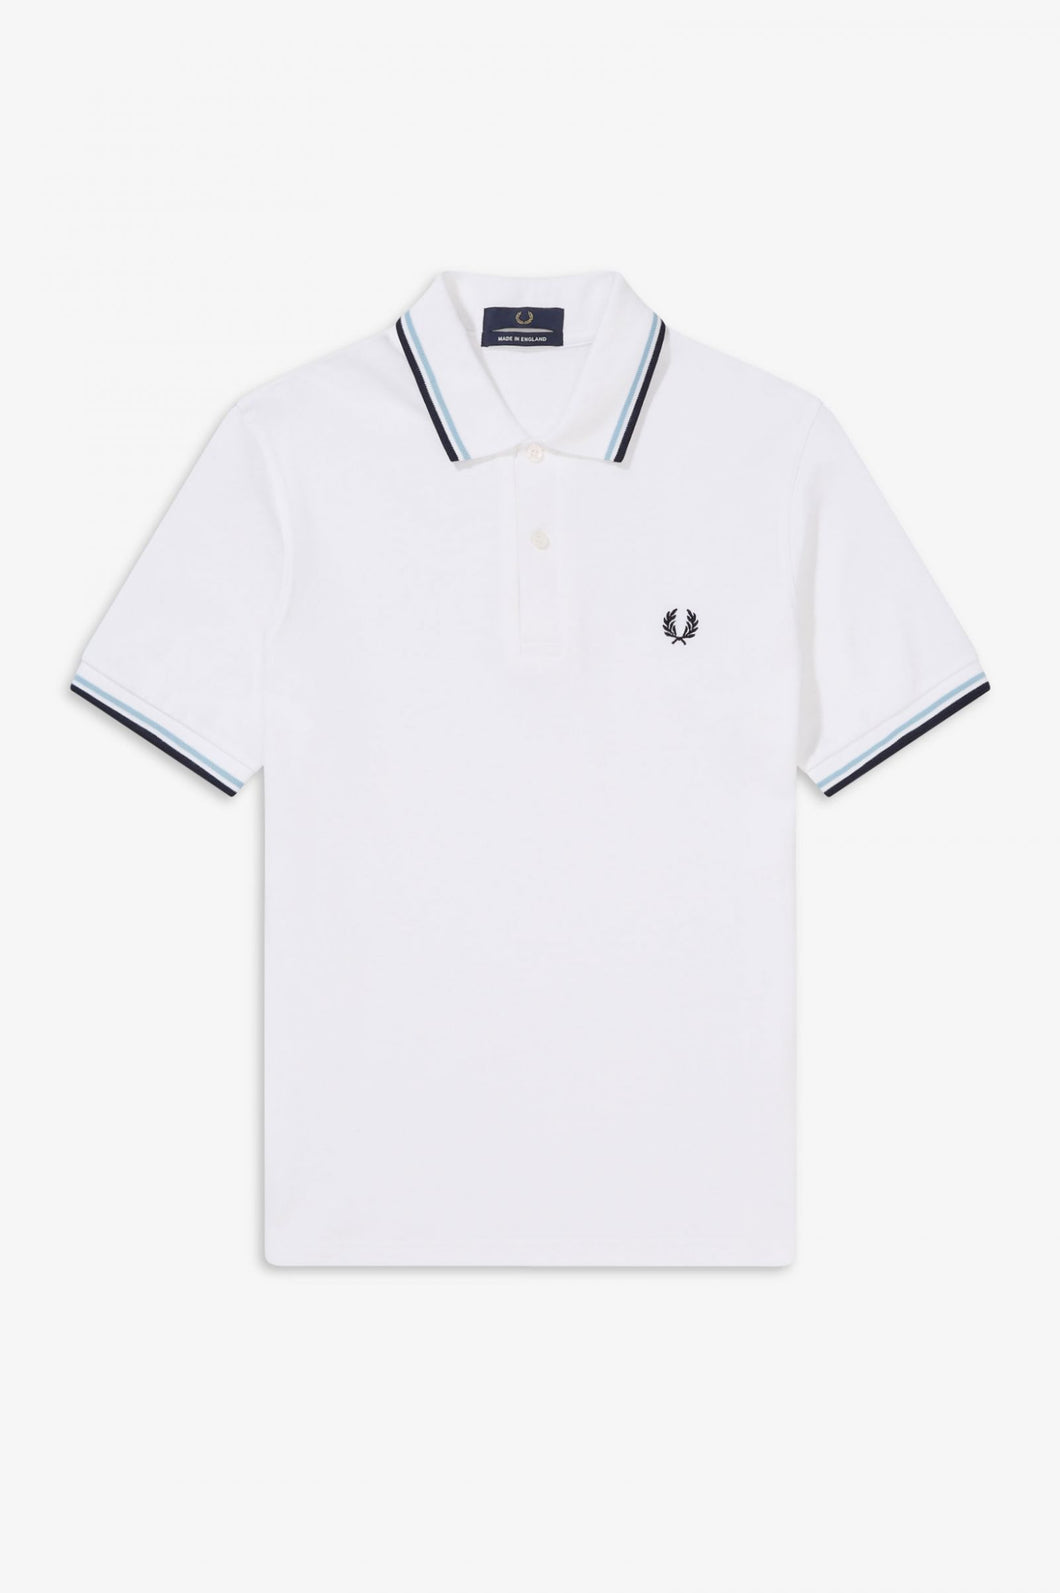 Fred Perry Made in England Polo - Classic White with Navy and Sky Twin Tipping